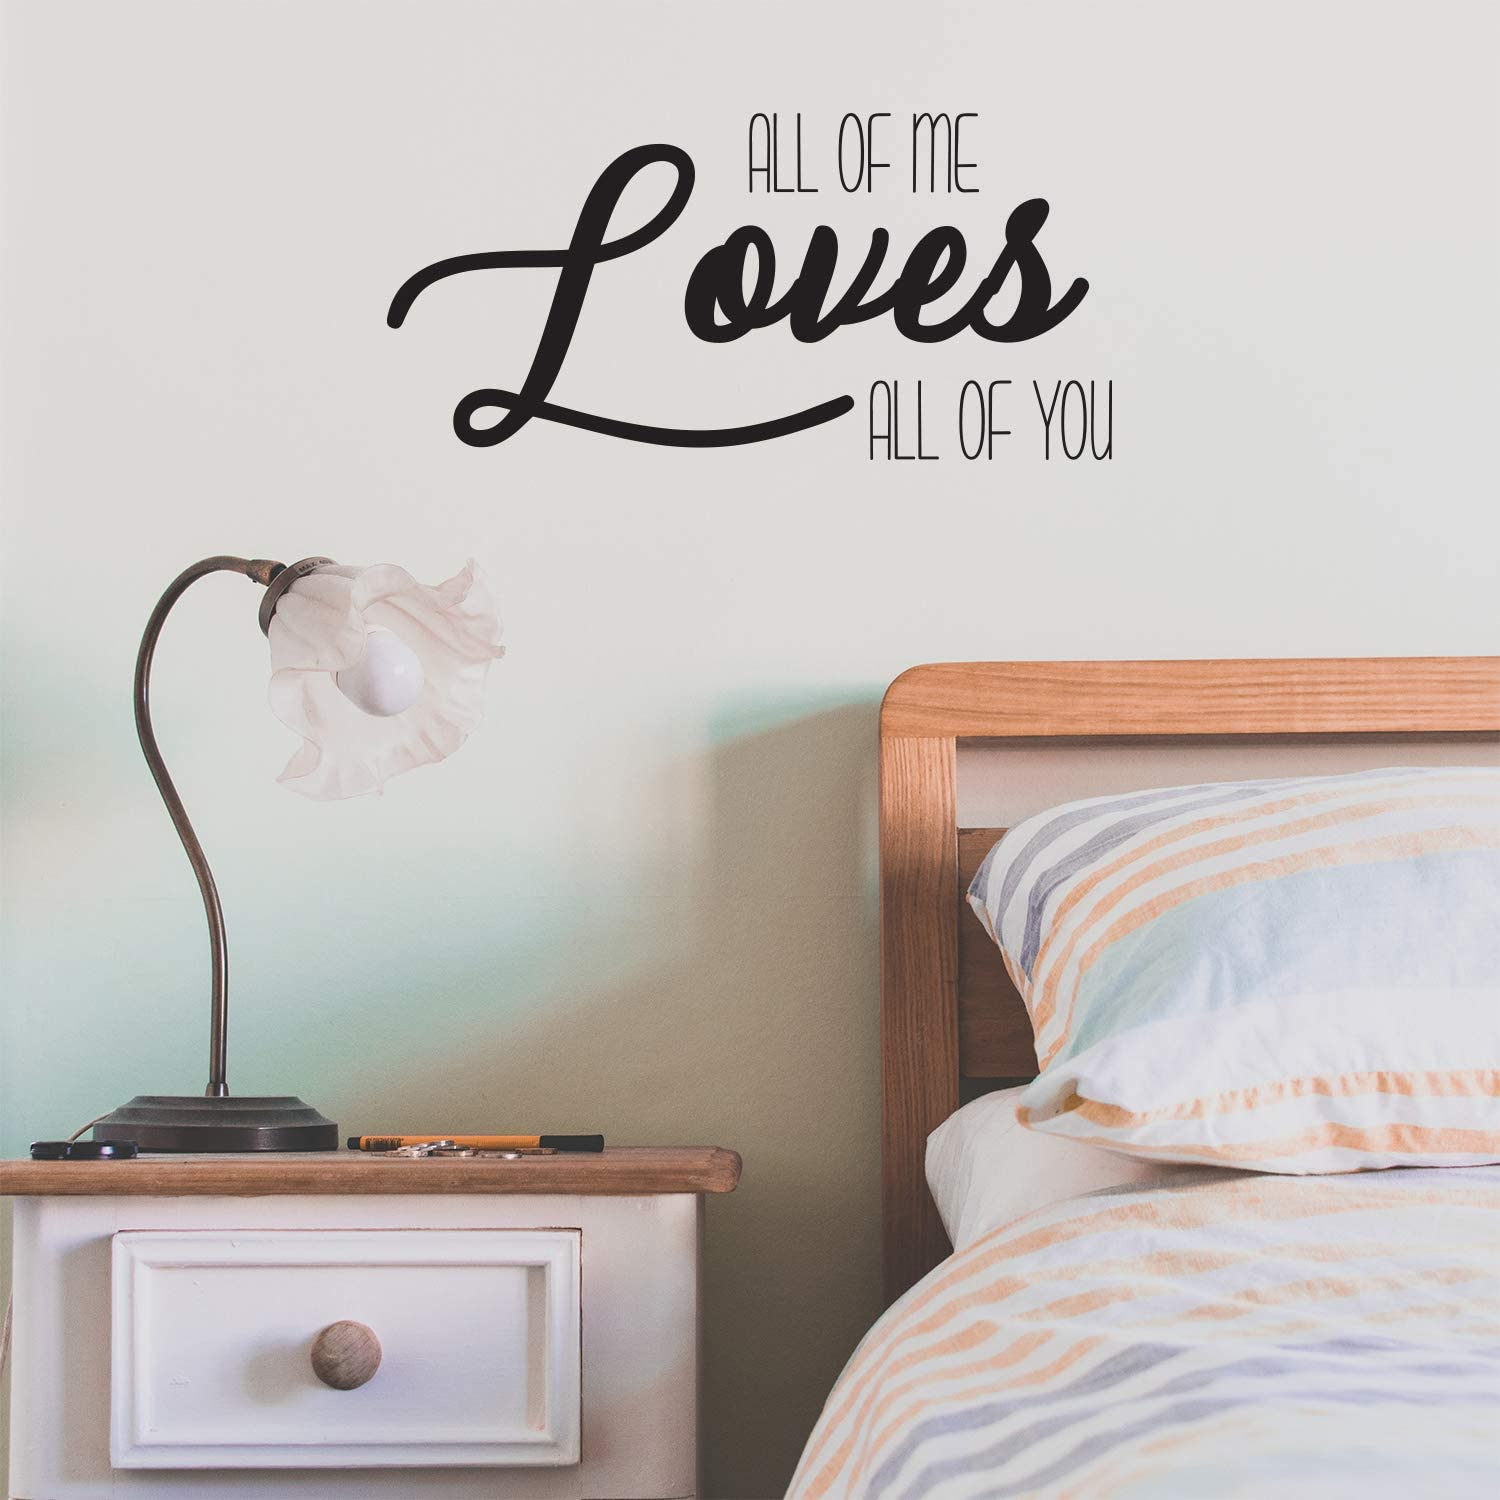 Amazon Com Husband And Wife Bedroom Vinyl Wall Art Decal All Of Me Loves All Of You 11 X 23 Inspirational Love Quote Home Decor Removable Vinyl Sticker Decals For Couples